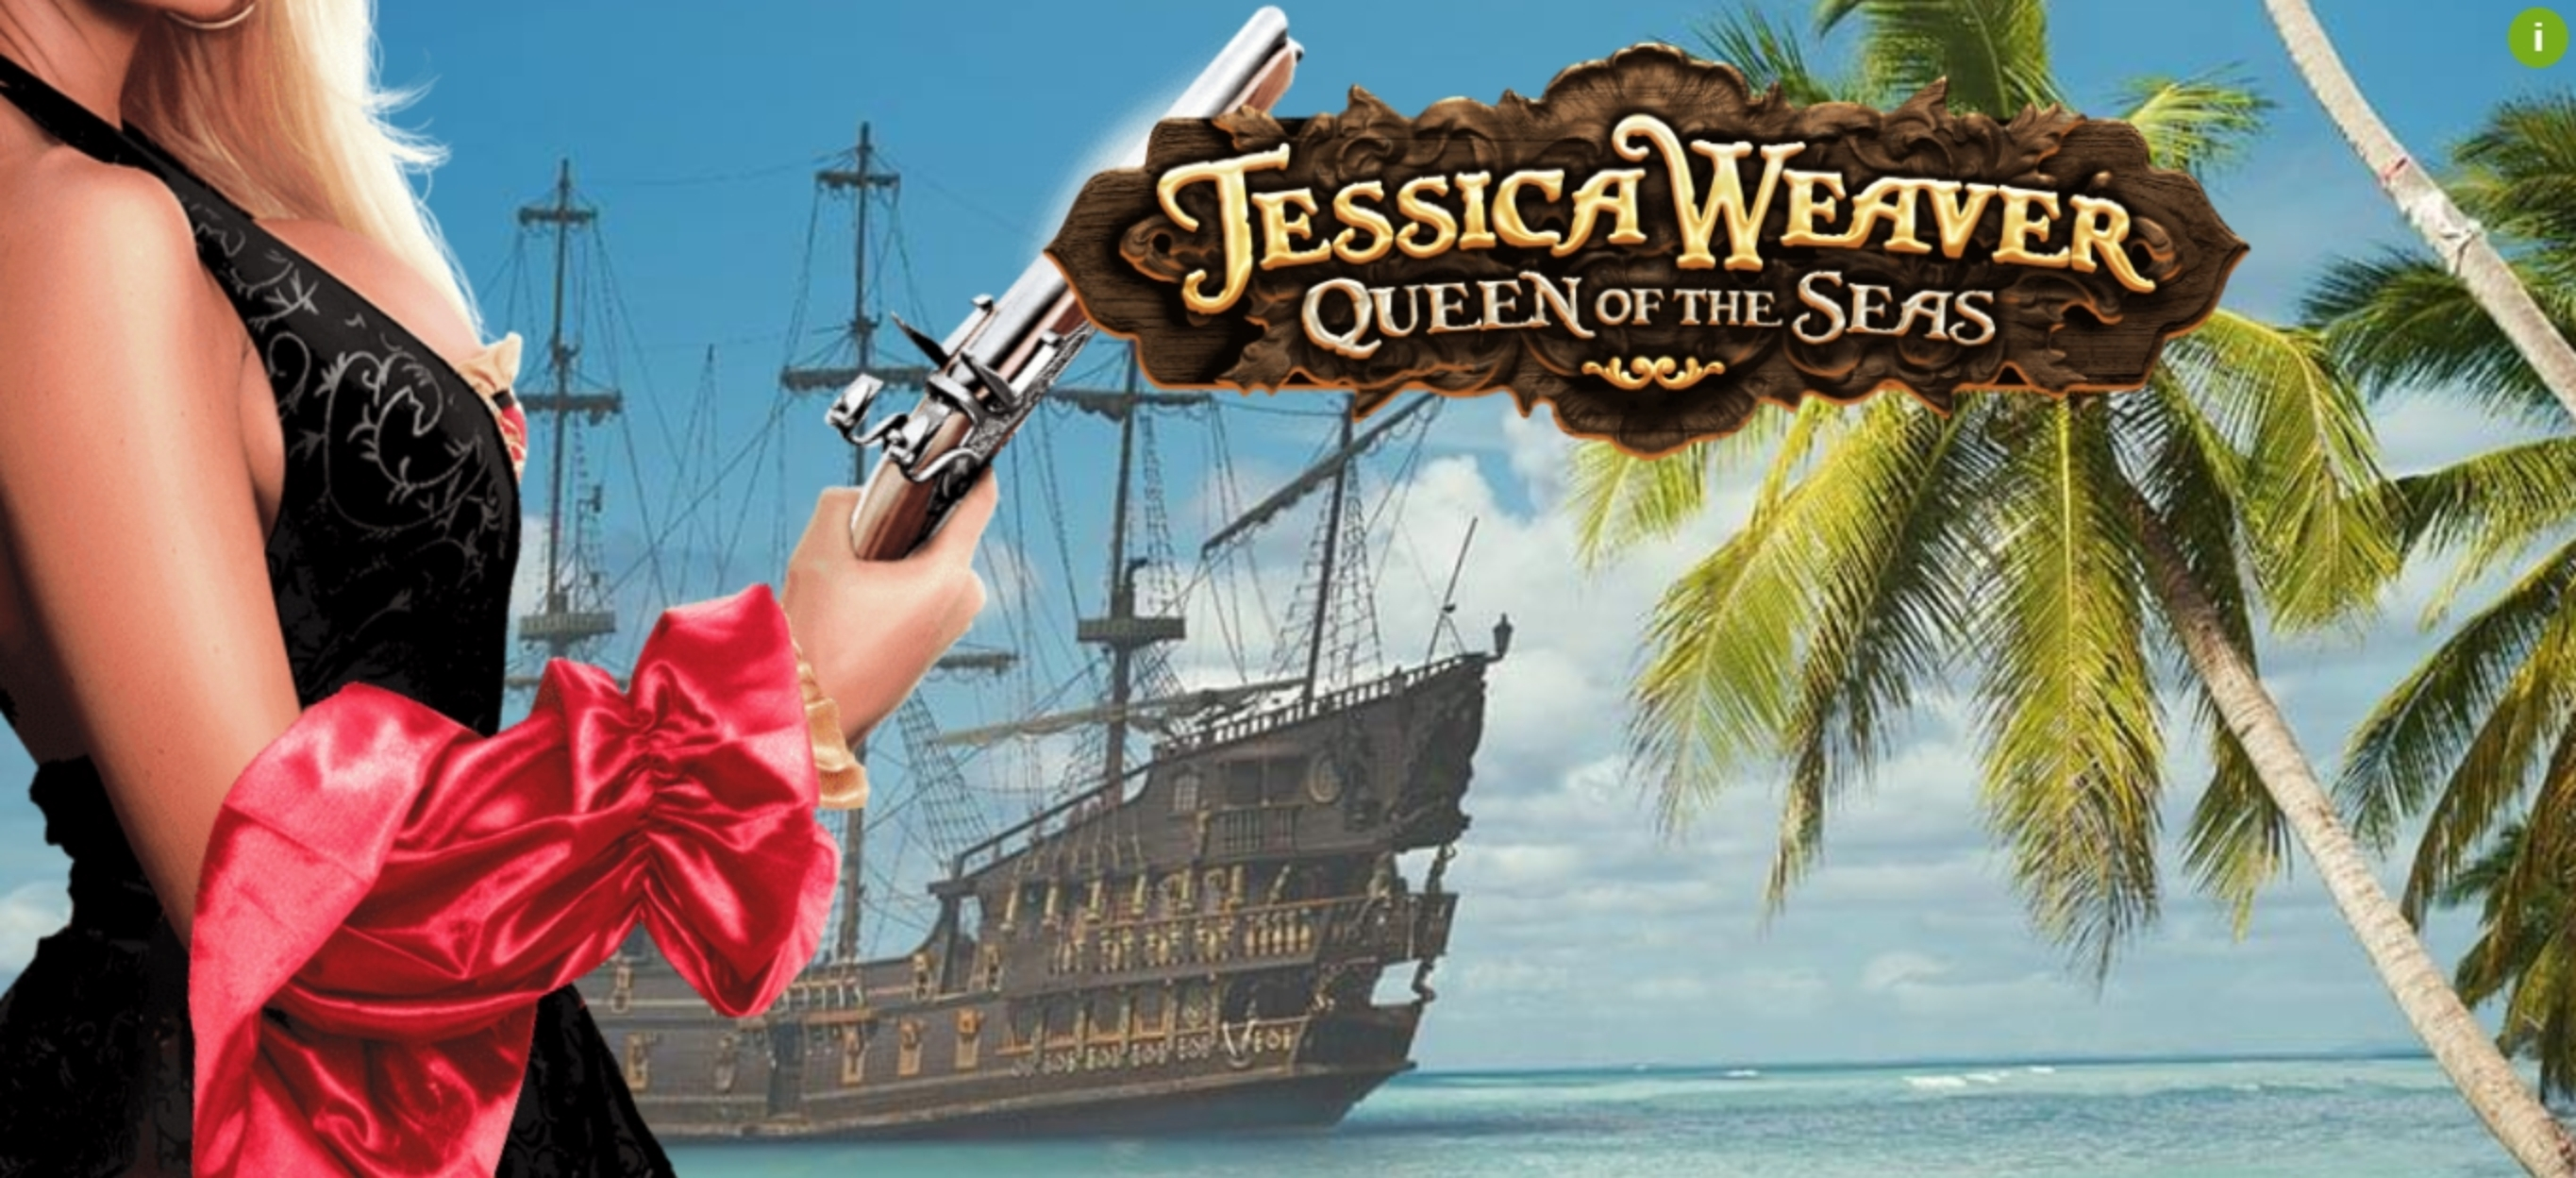 Se Jessica Weaver Queen of the Seas Online Slot Demo Game, MGA